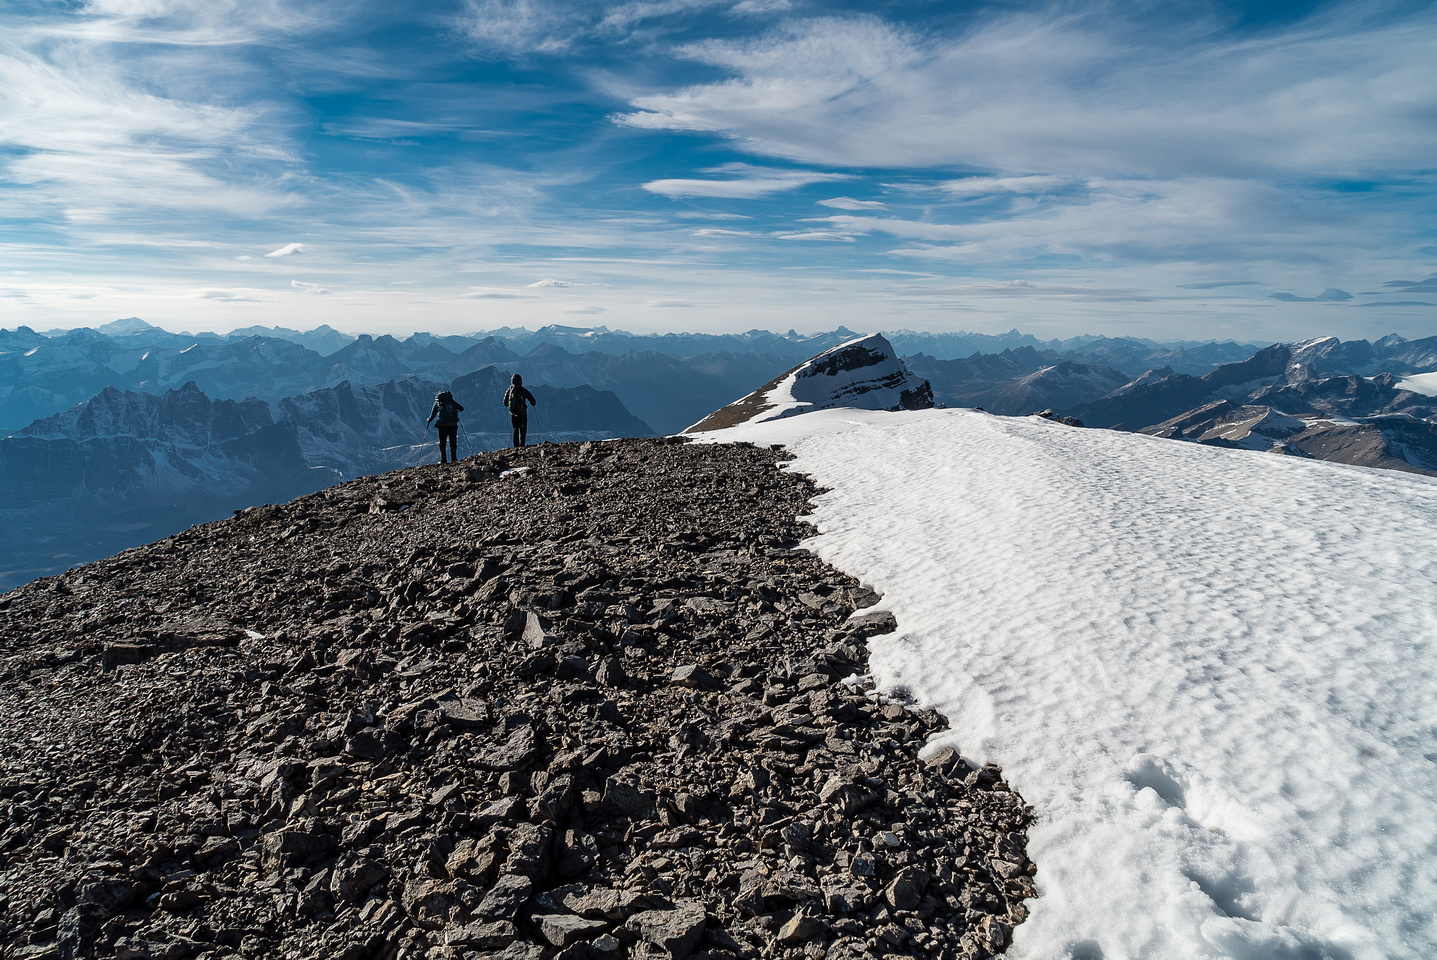 Leaving the summit as the shadows grow long.